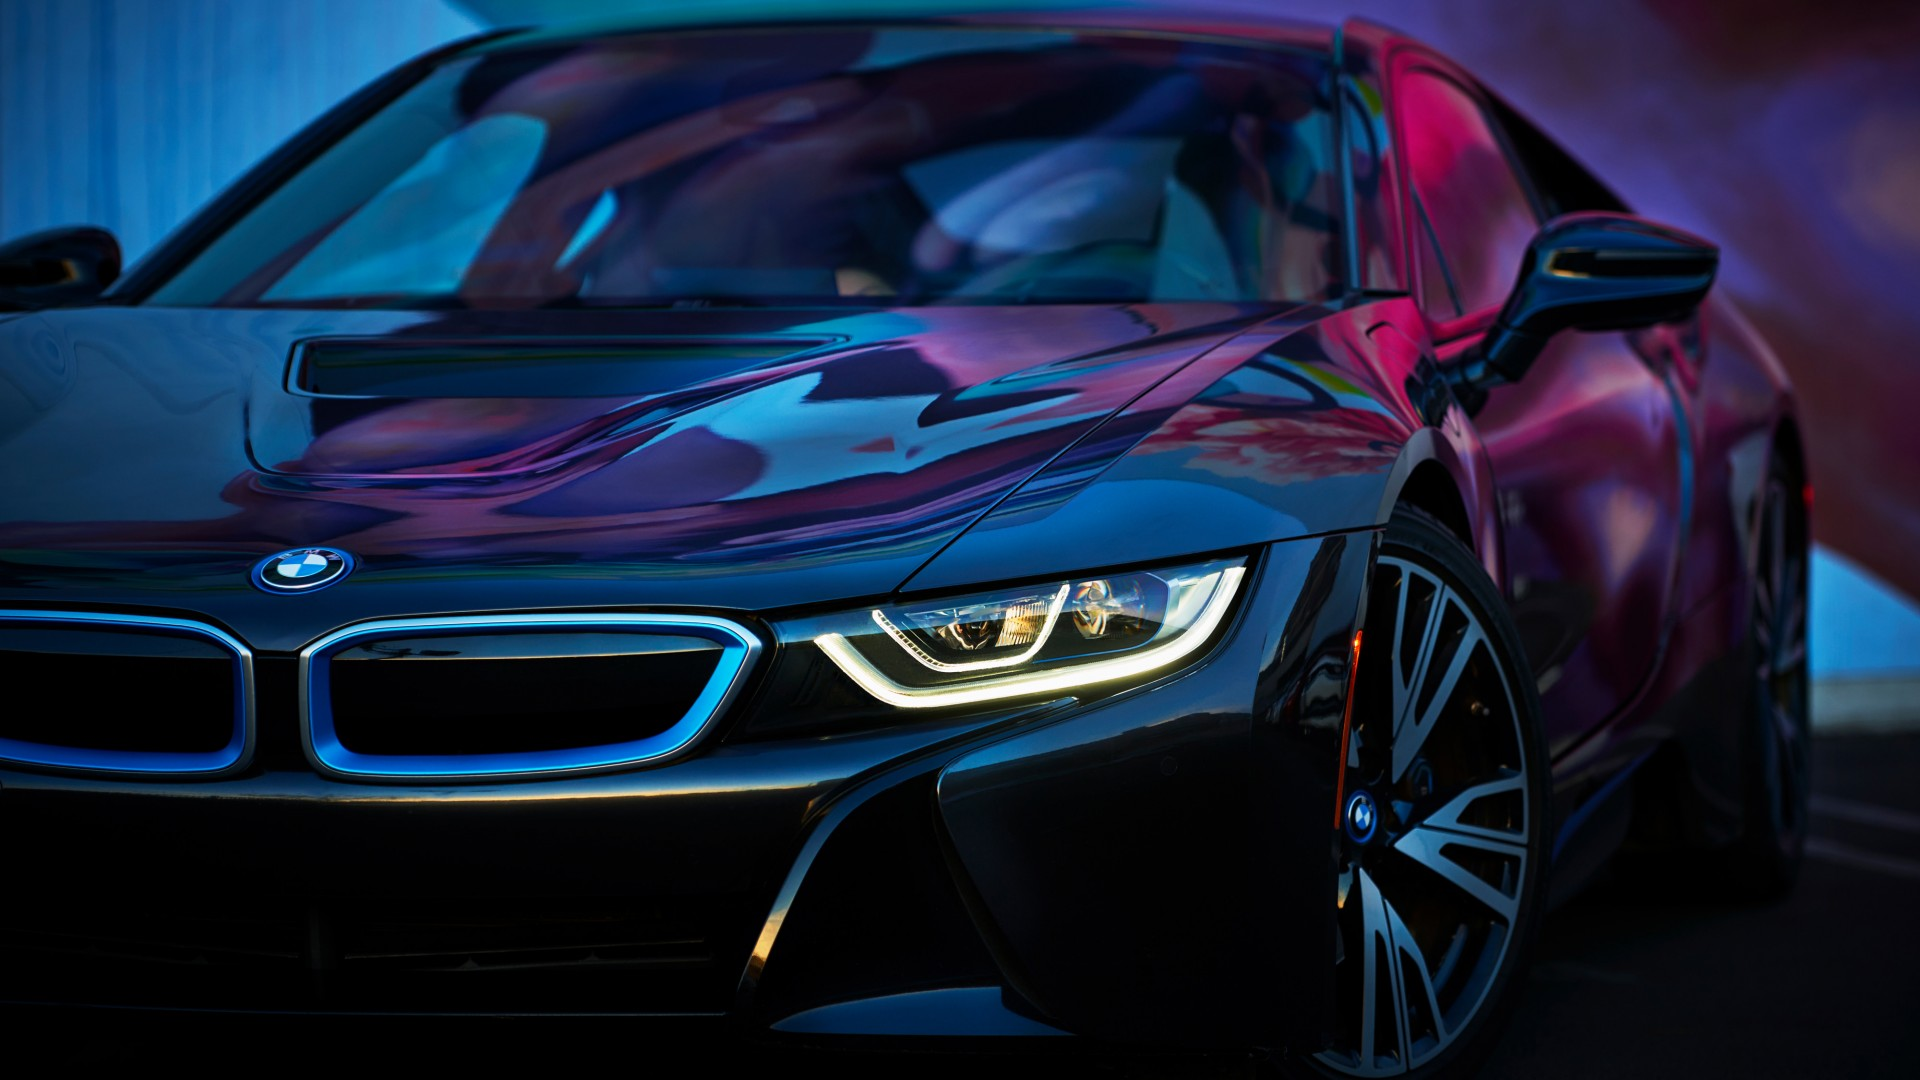 2018 Bmw I8 4k Wallpaper Hd Car Wallpapers Id 9693